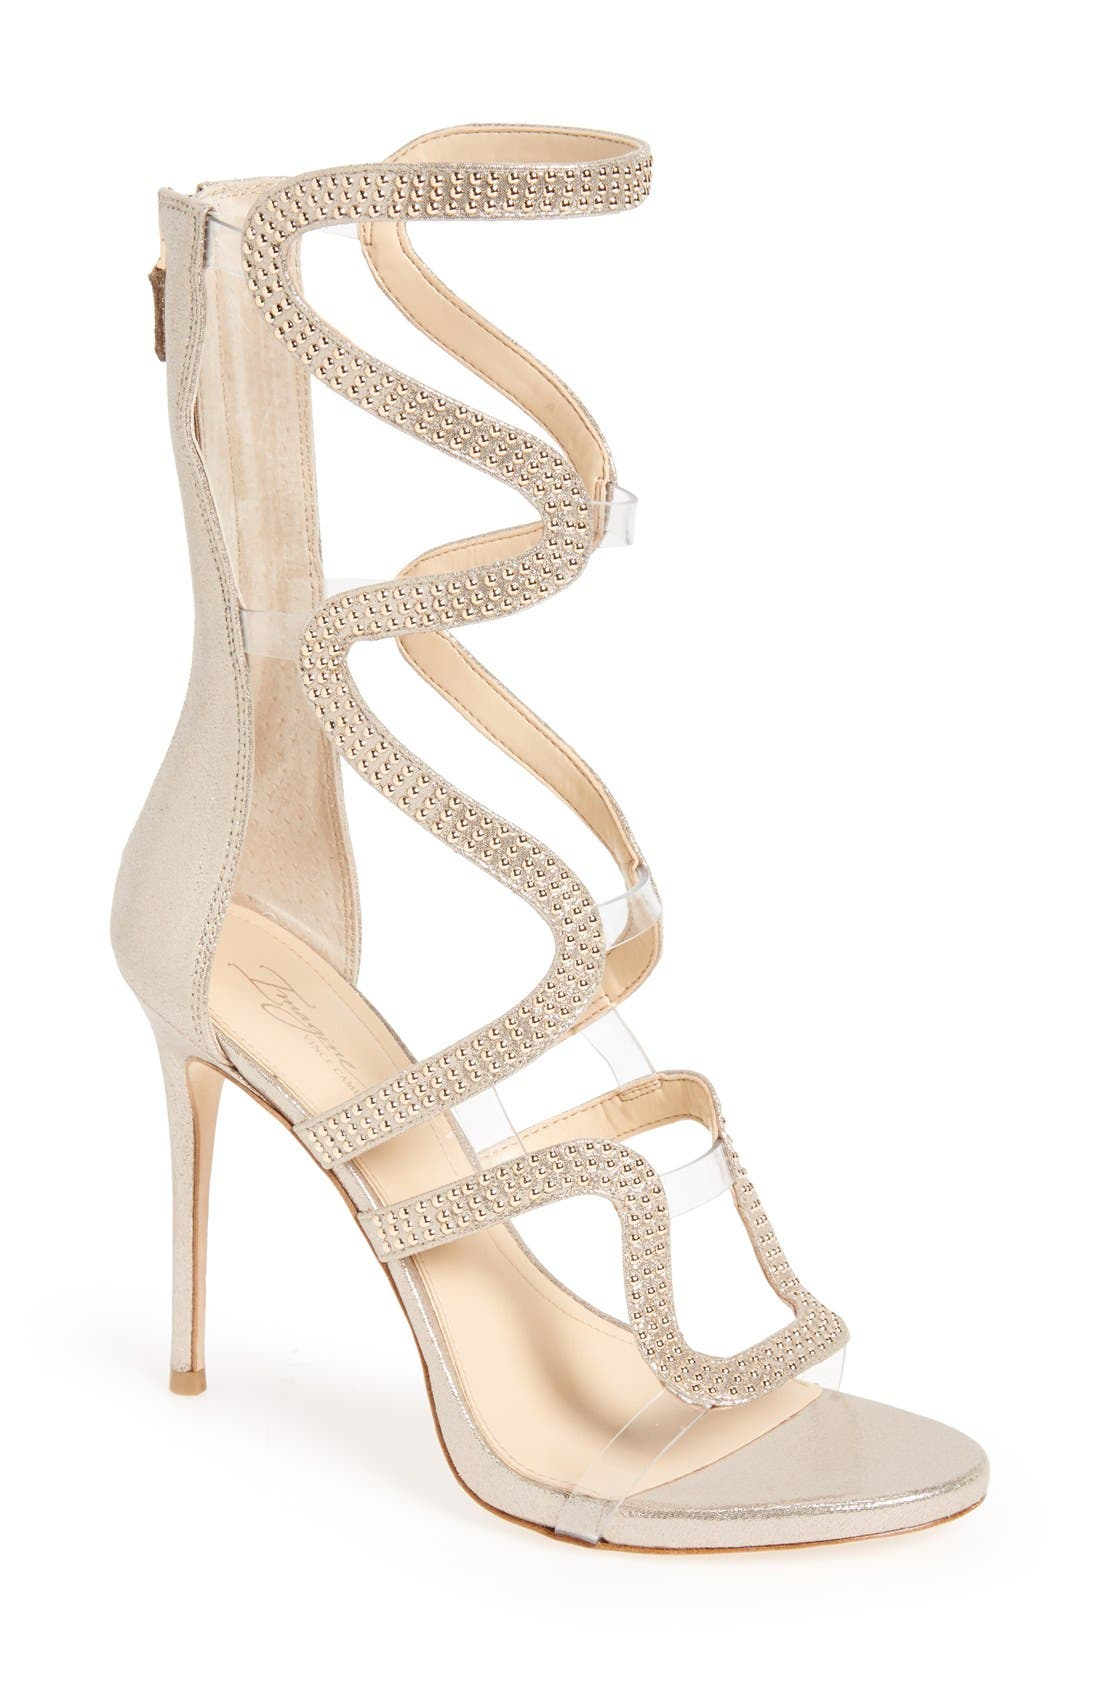 Imagine Vince Camuto 'Dash' Cage Sandal,                             Main thumbnail 1, color,                             Soft Gold Satin